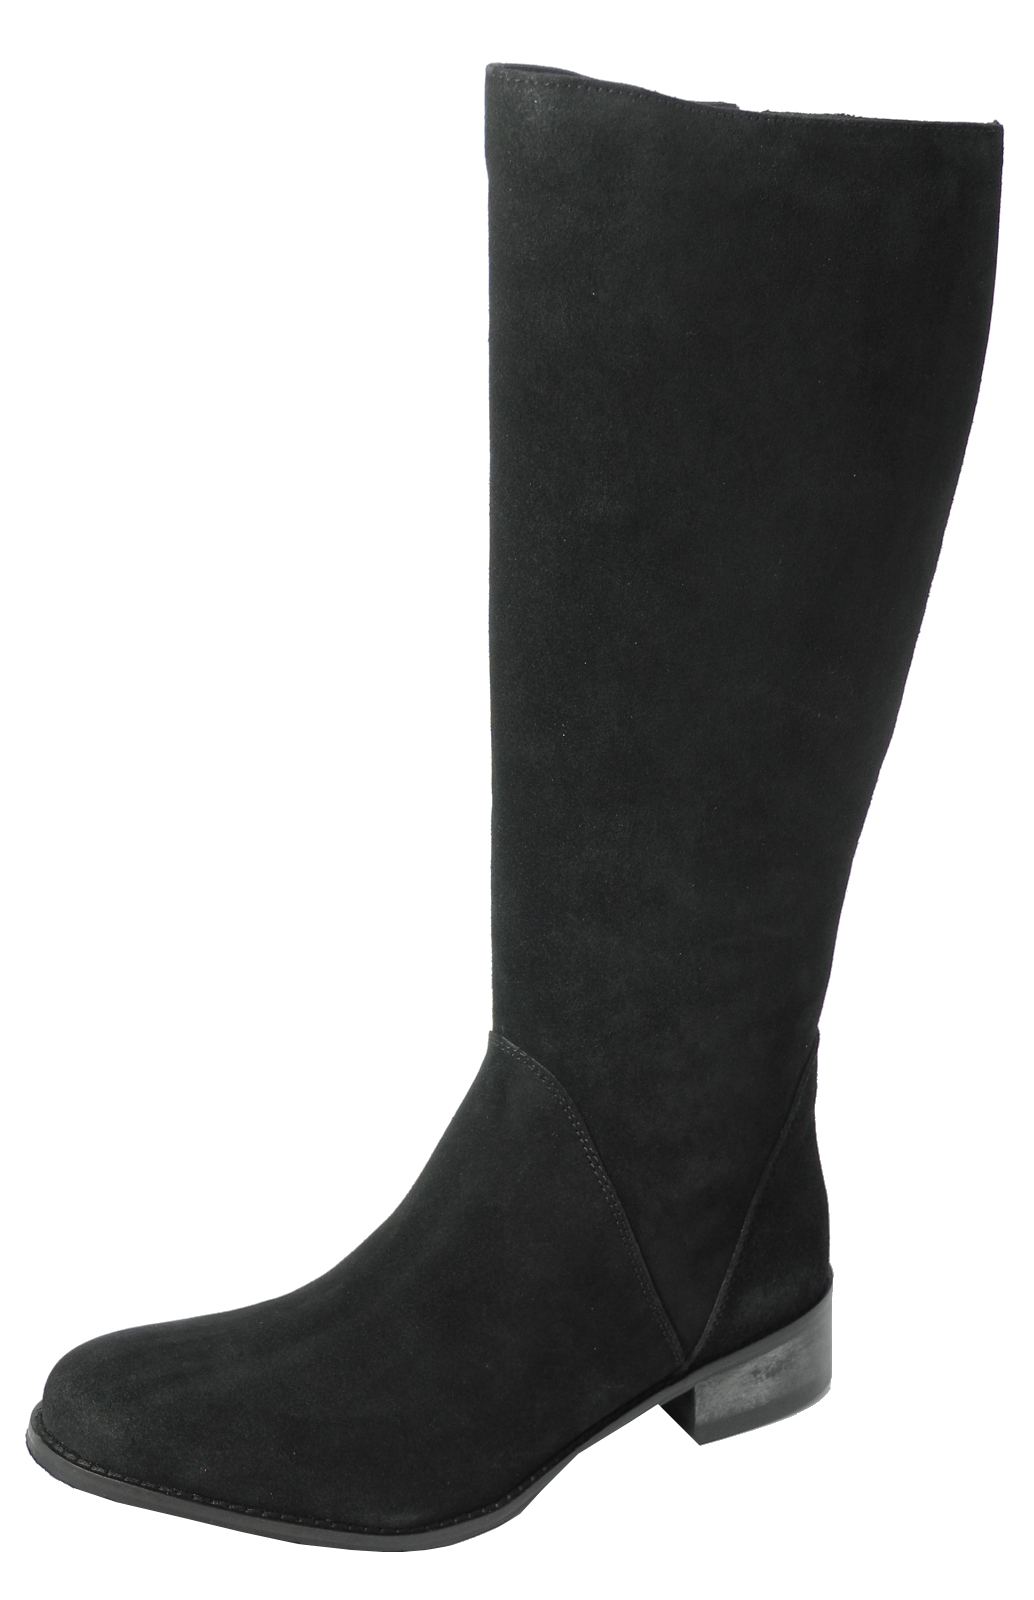 Knee-high boots are a winter staple and the high heeled variation is an extension of the trend. The online selection ranges from black leather boots, suede boots and patent upper boots, carefully selected to suit a broad range of style aesthetics.